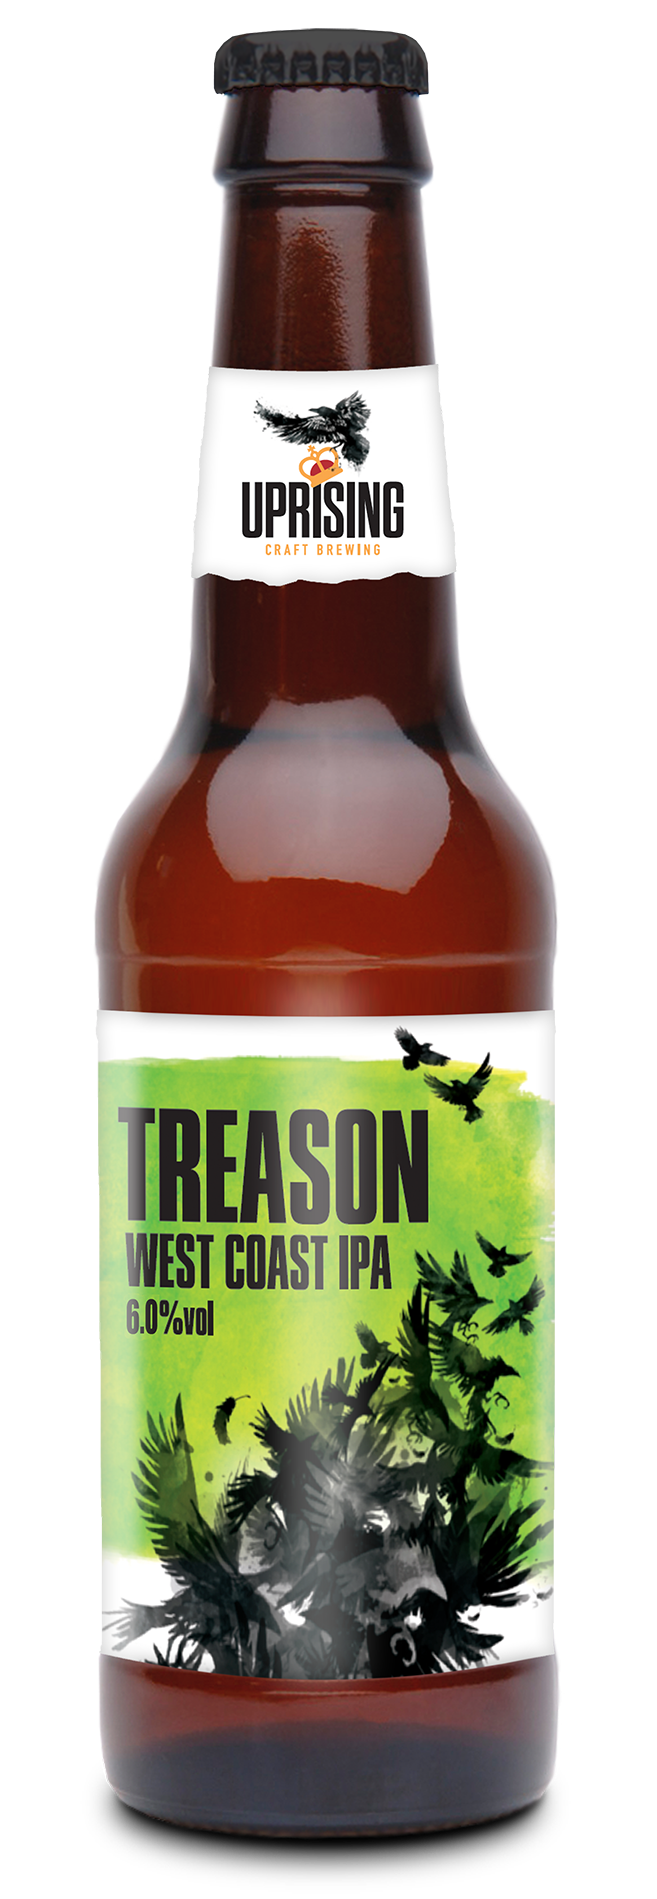 UPRISING Treason West Coast IPA 6% 12 x 330ml